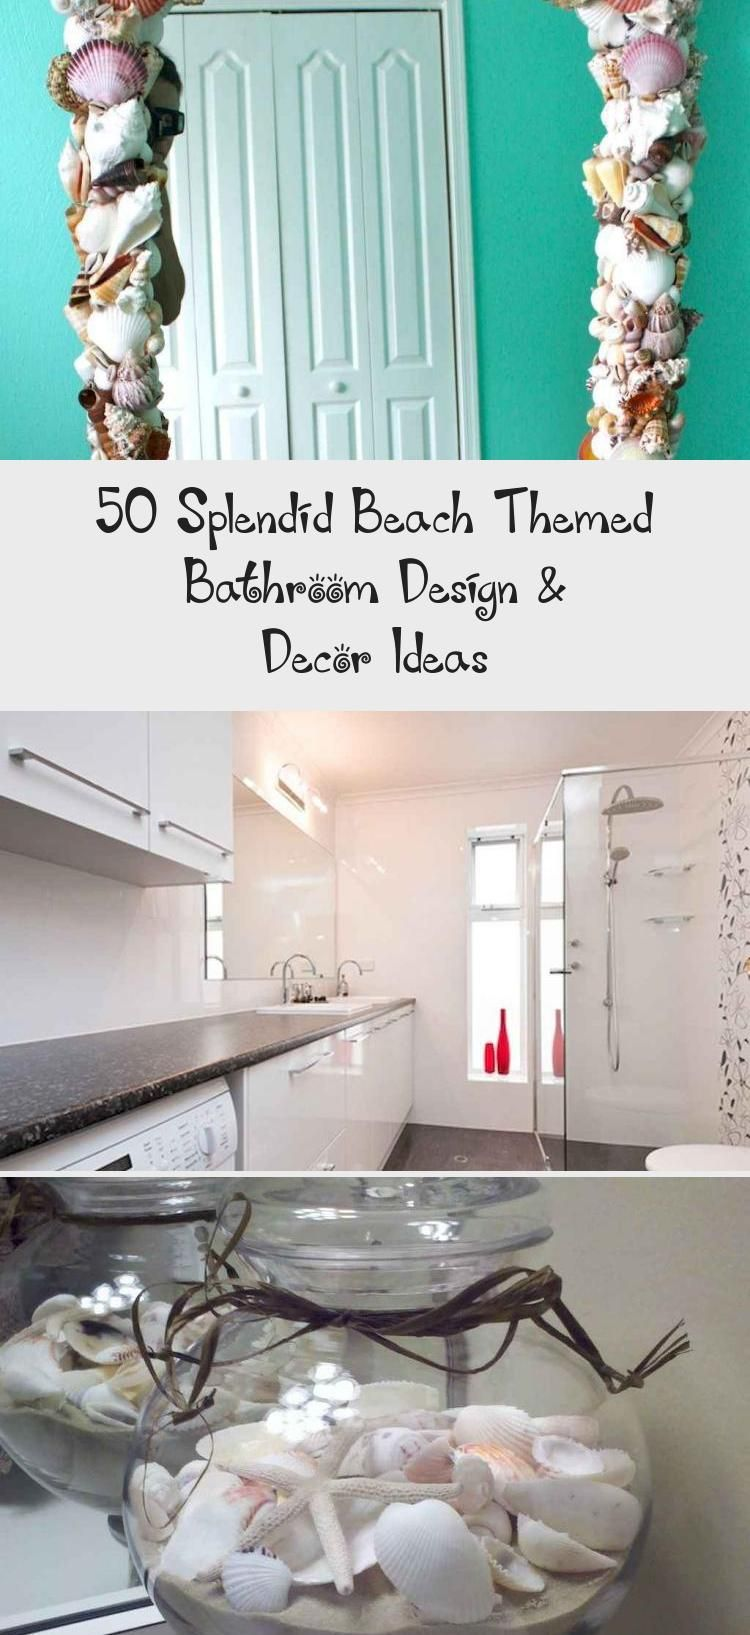 50 Splendid Beach Themed Bathroom Design & Decor Ideas – Decorations Bathroom